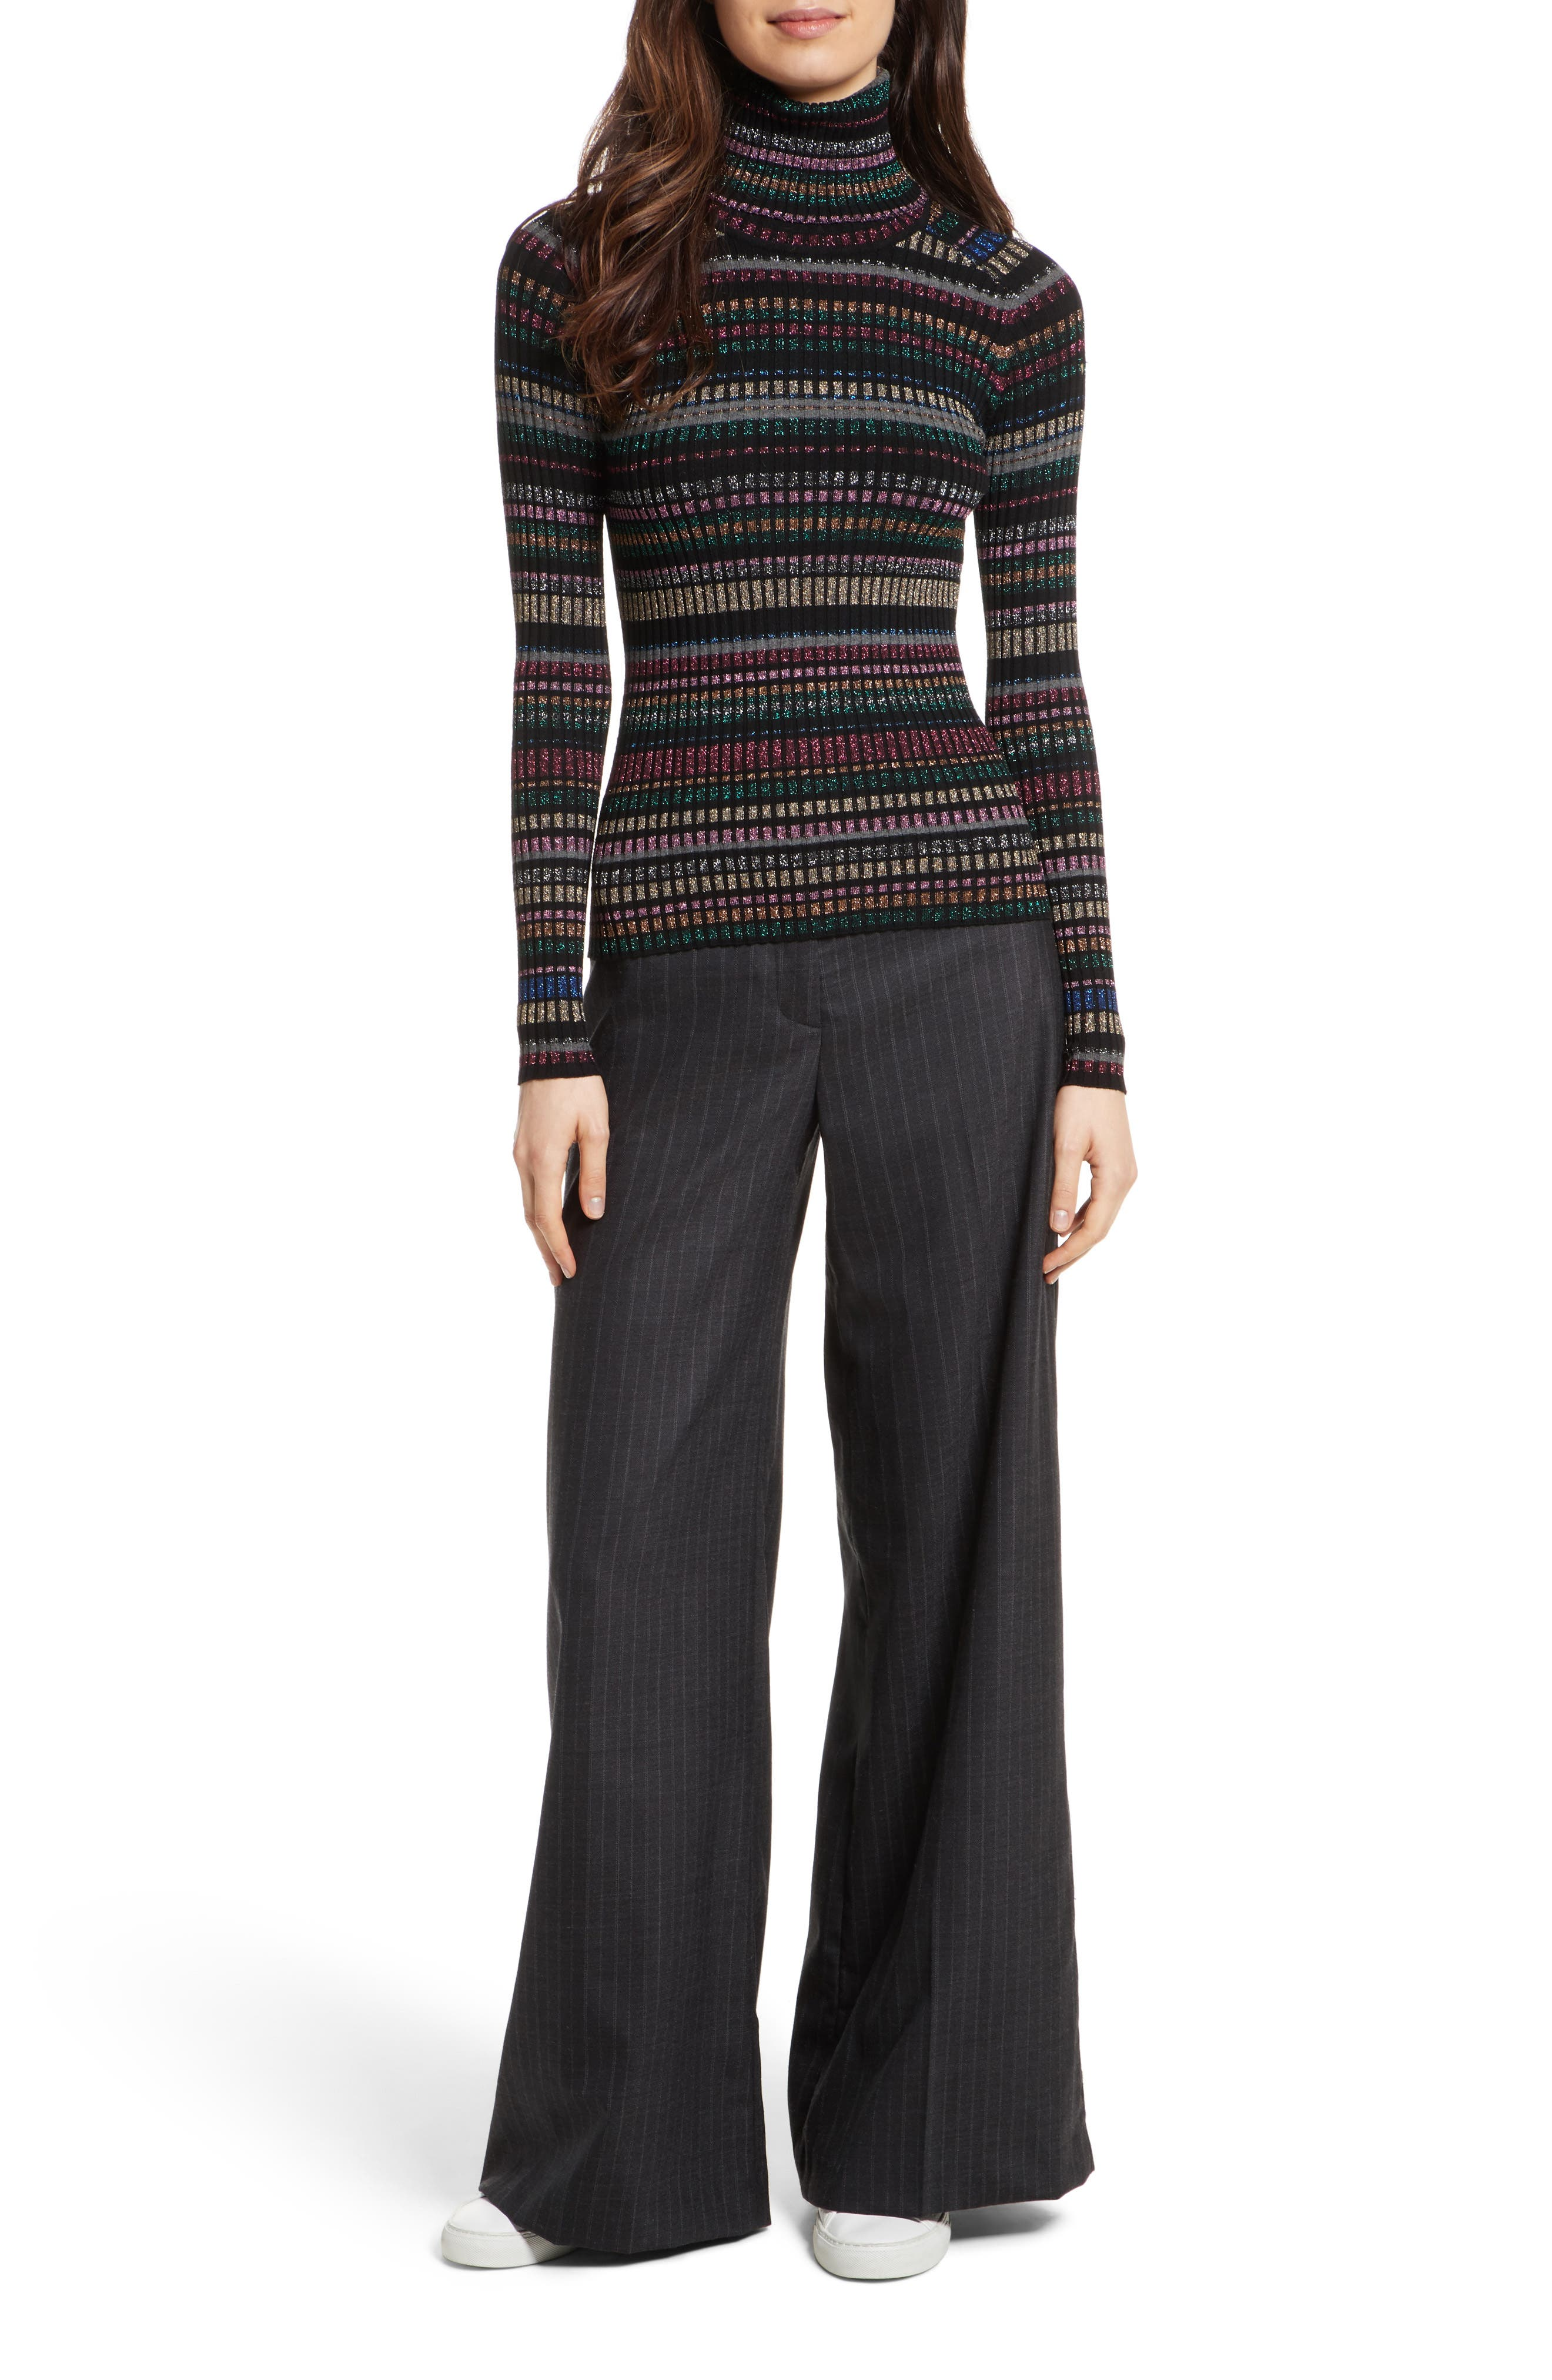 Sia Pinstripe Italian Stretch Wool Trousers,                             Alternate thumbnail 7, color,